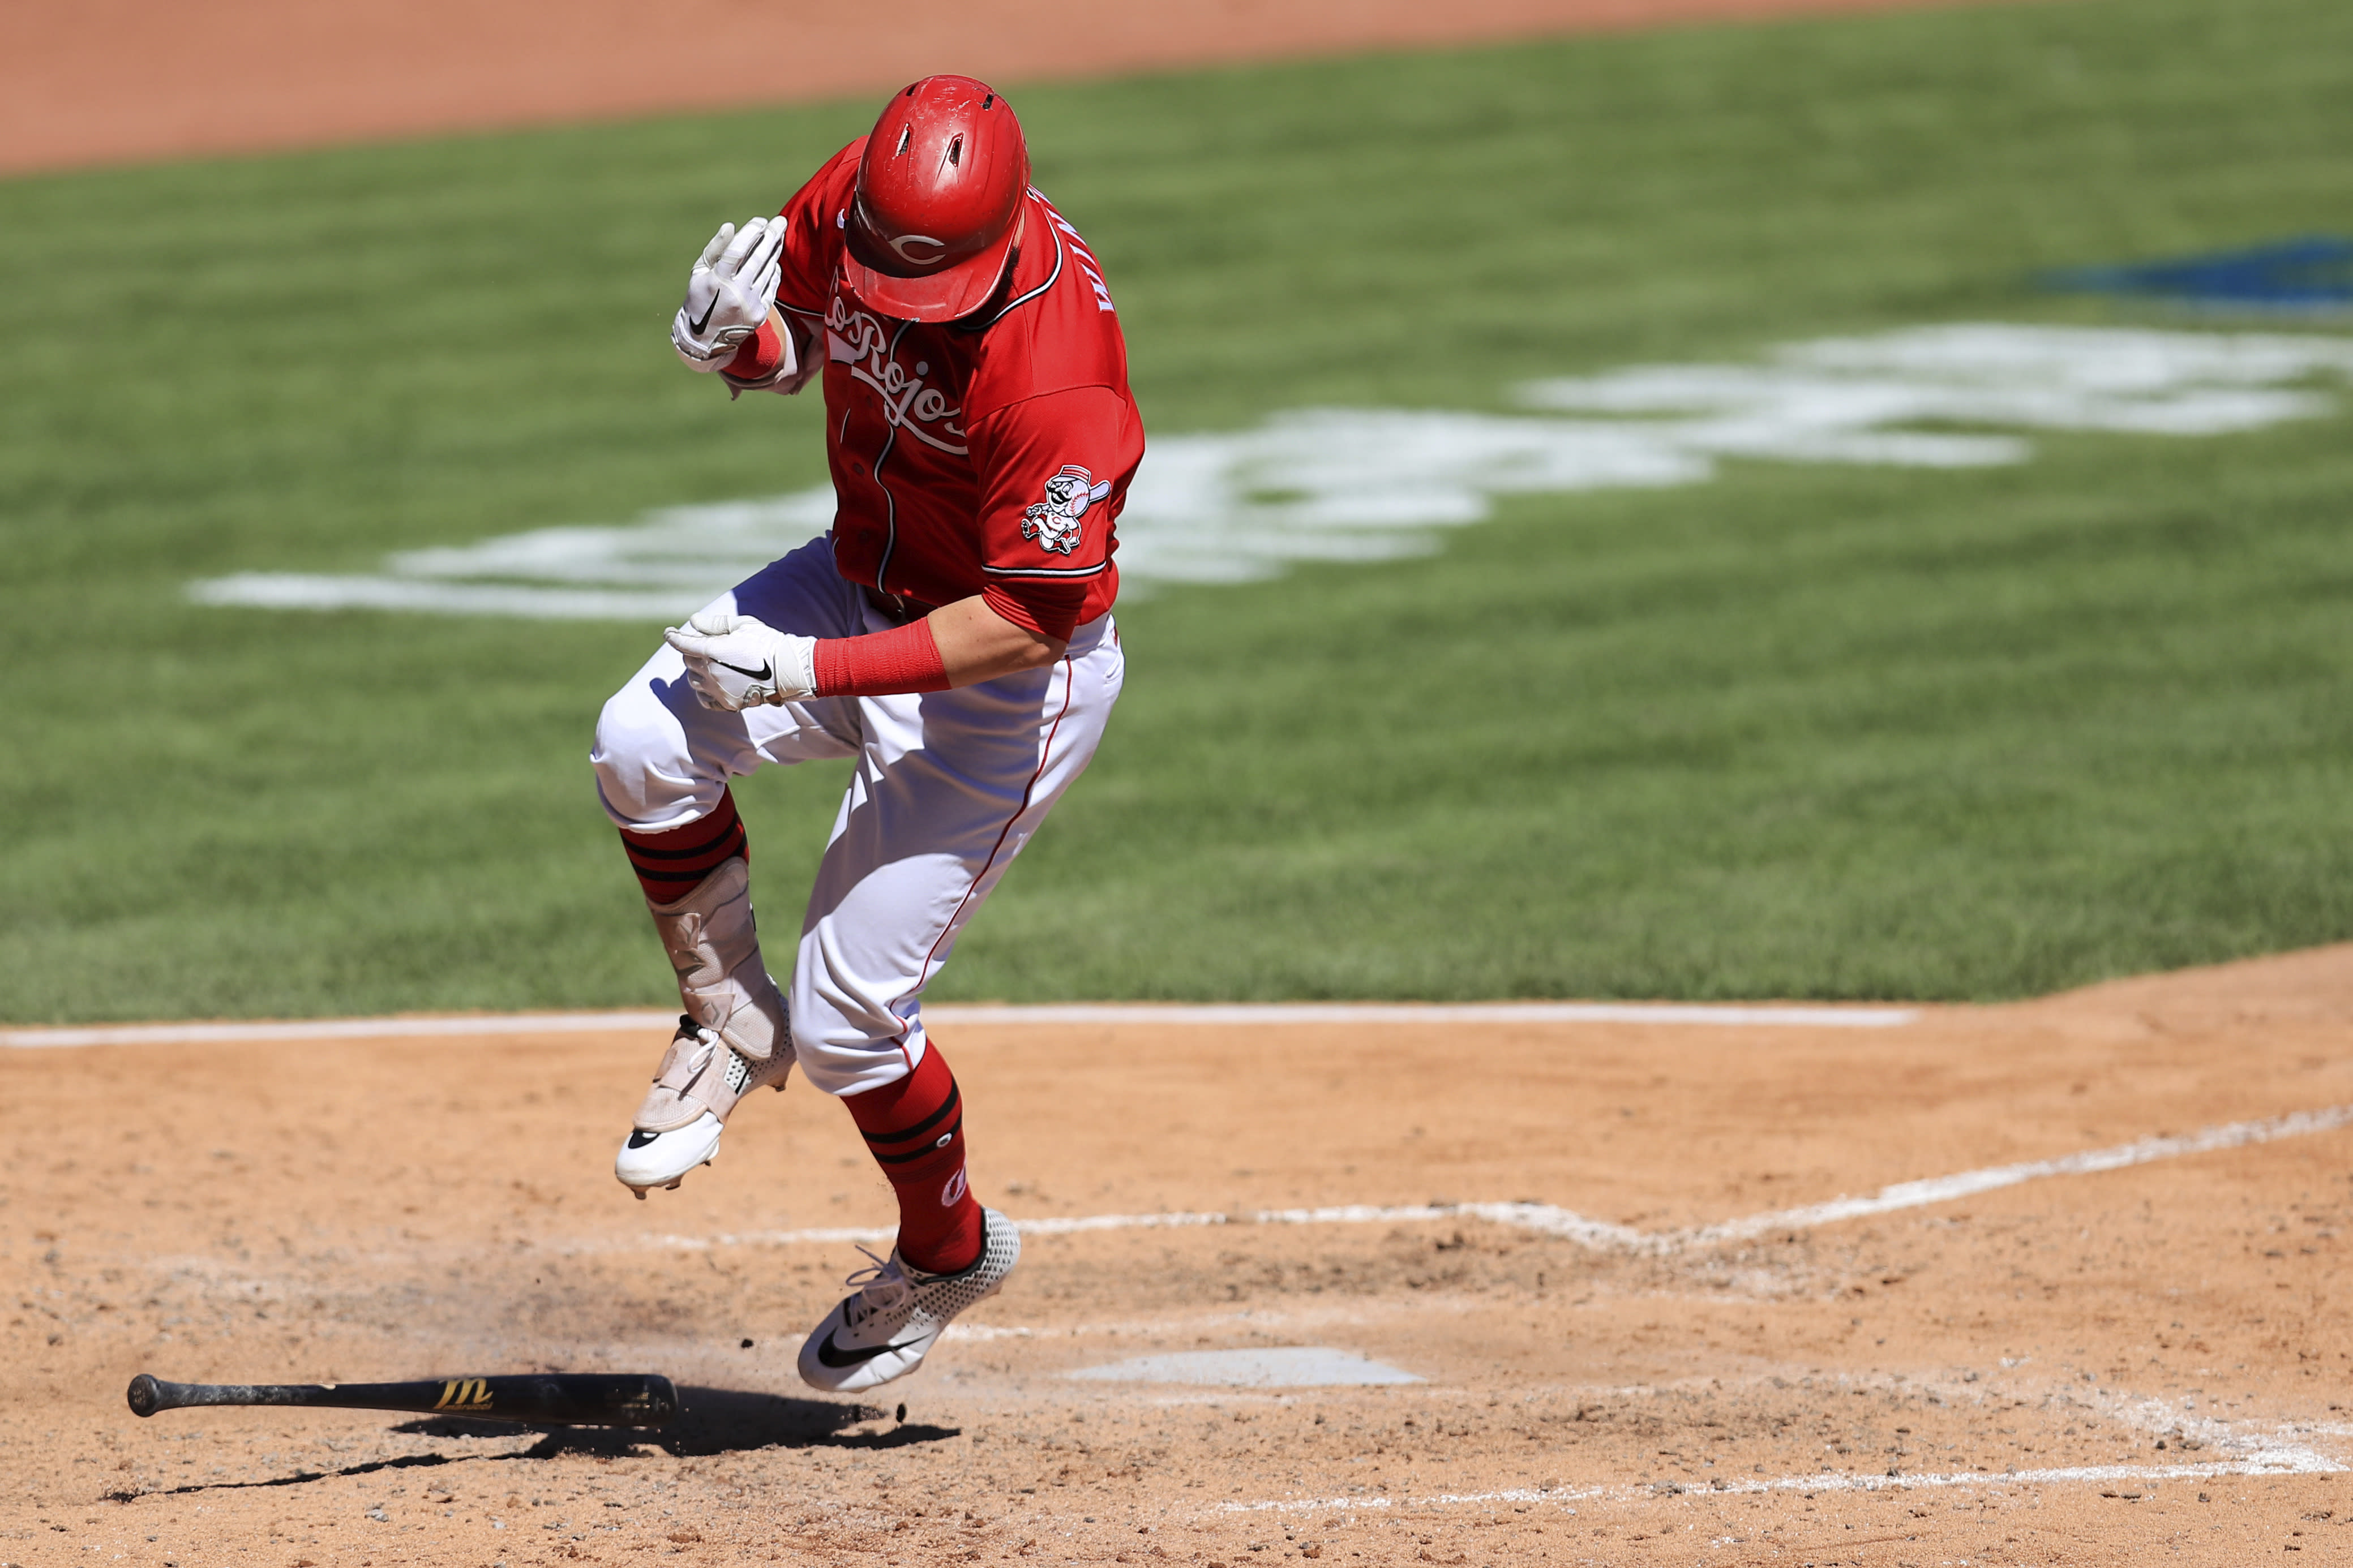 Cincinnati Reds' Jesse Winker reacts to being hit on the hand by a pitch from Chicago White Sox' Ross Detwiler in the fourth inning during a baseball in Cincinnati, Sunday, Sept. 20, 2020. (AP Photo/Aaron Doster)